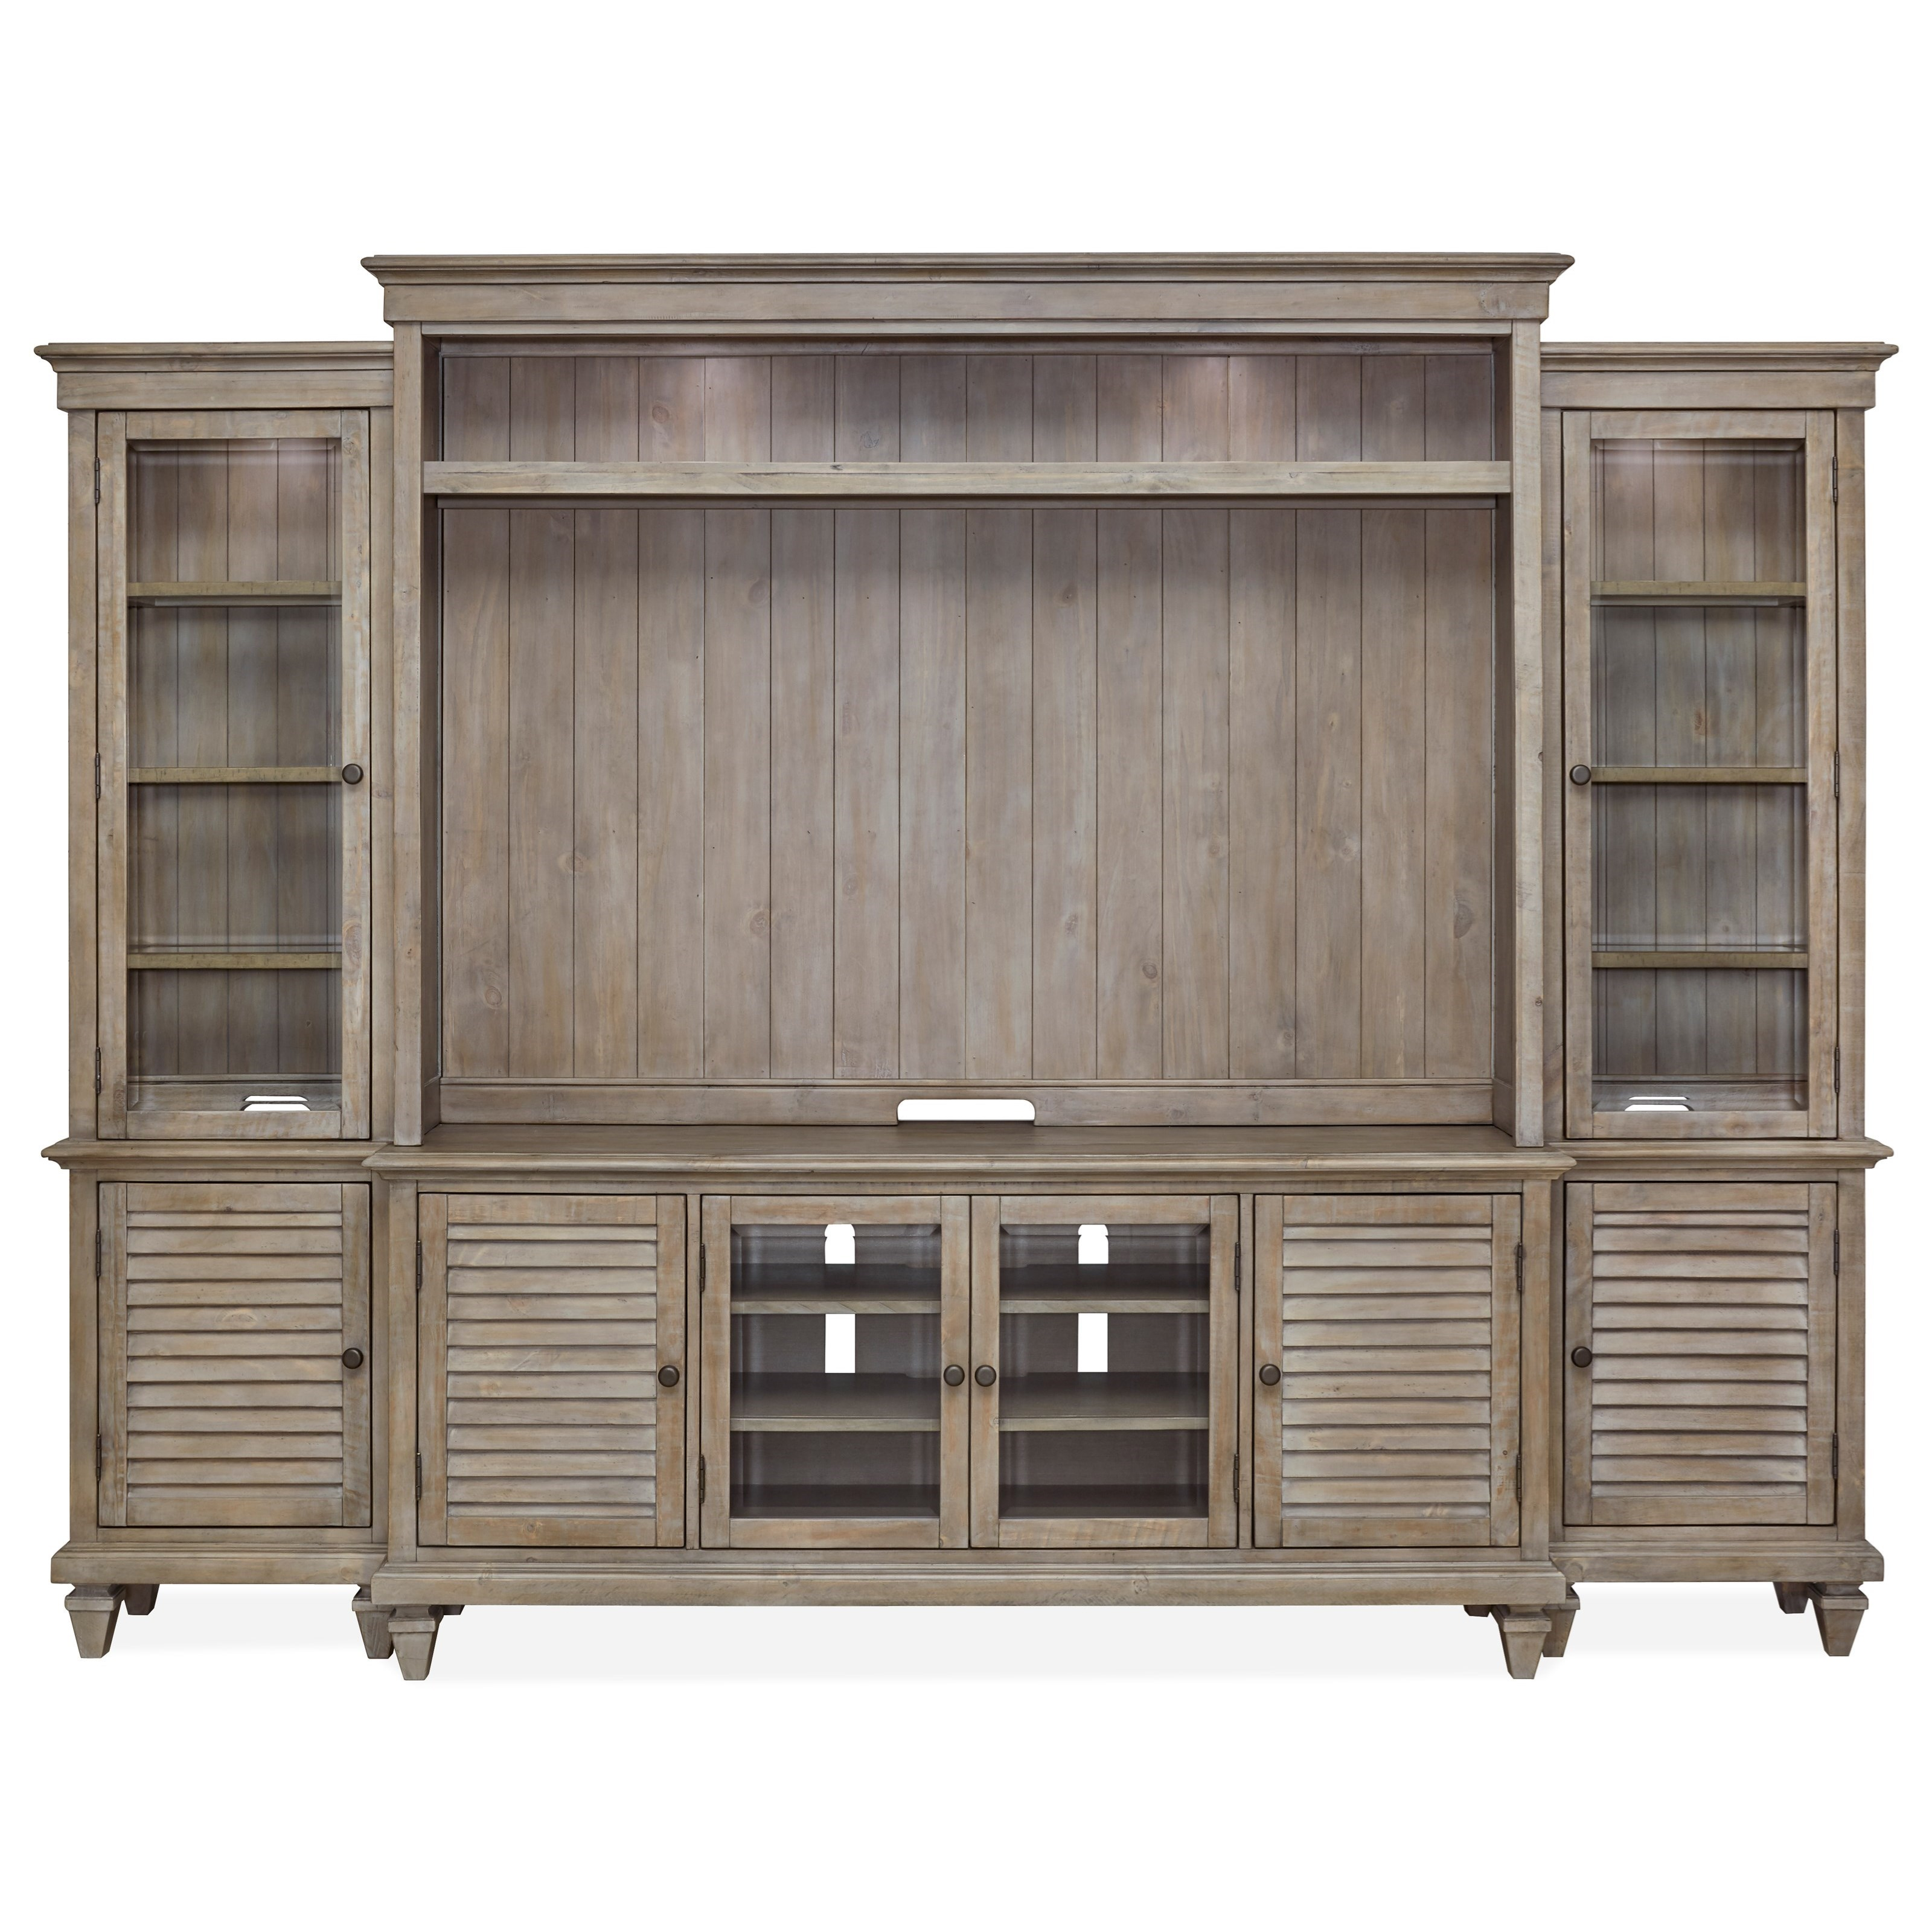 Lancaster Entertainment Wall Unit by Magnussen Home at Rotmans